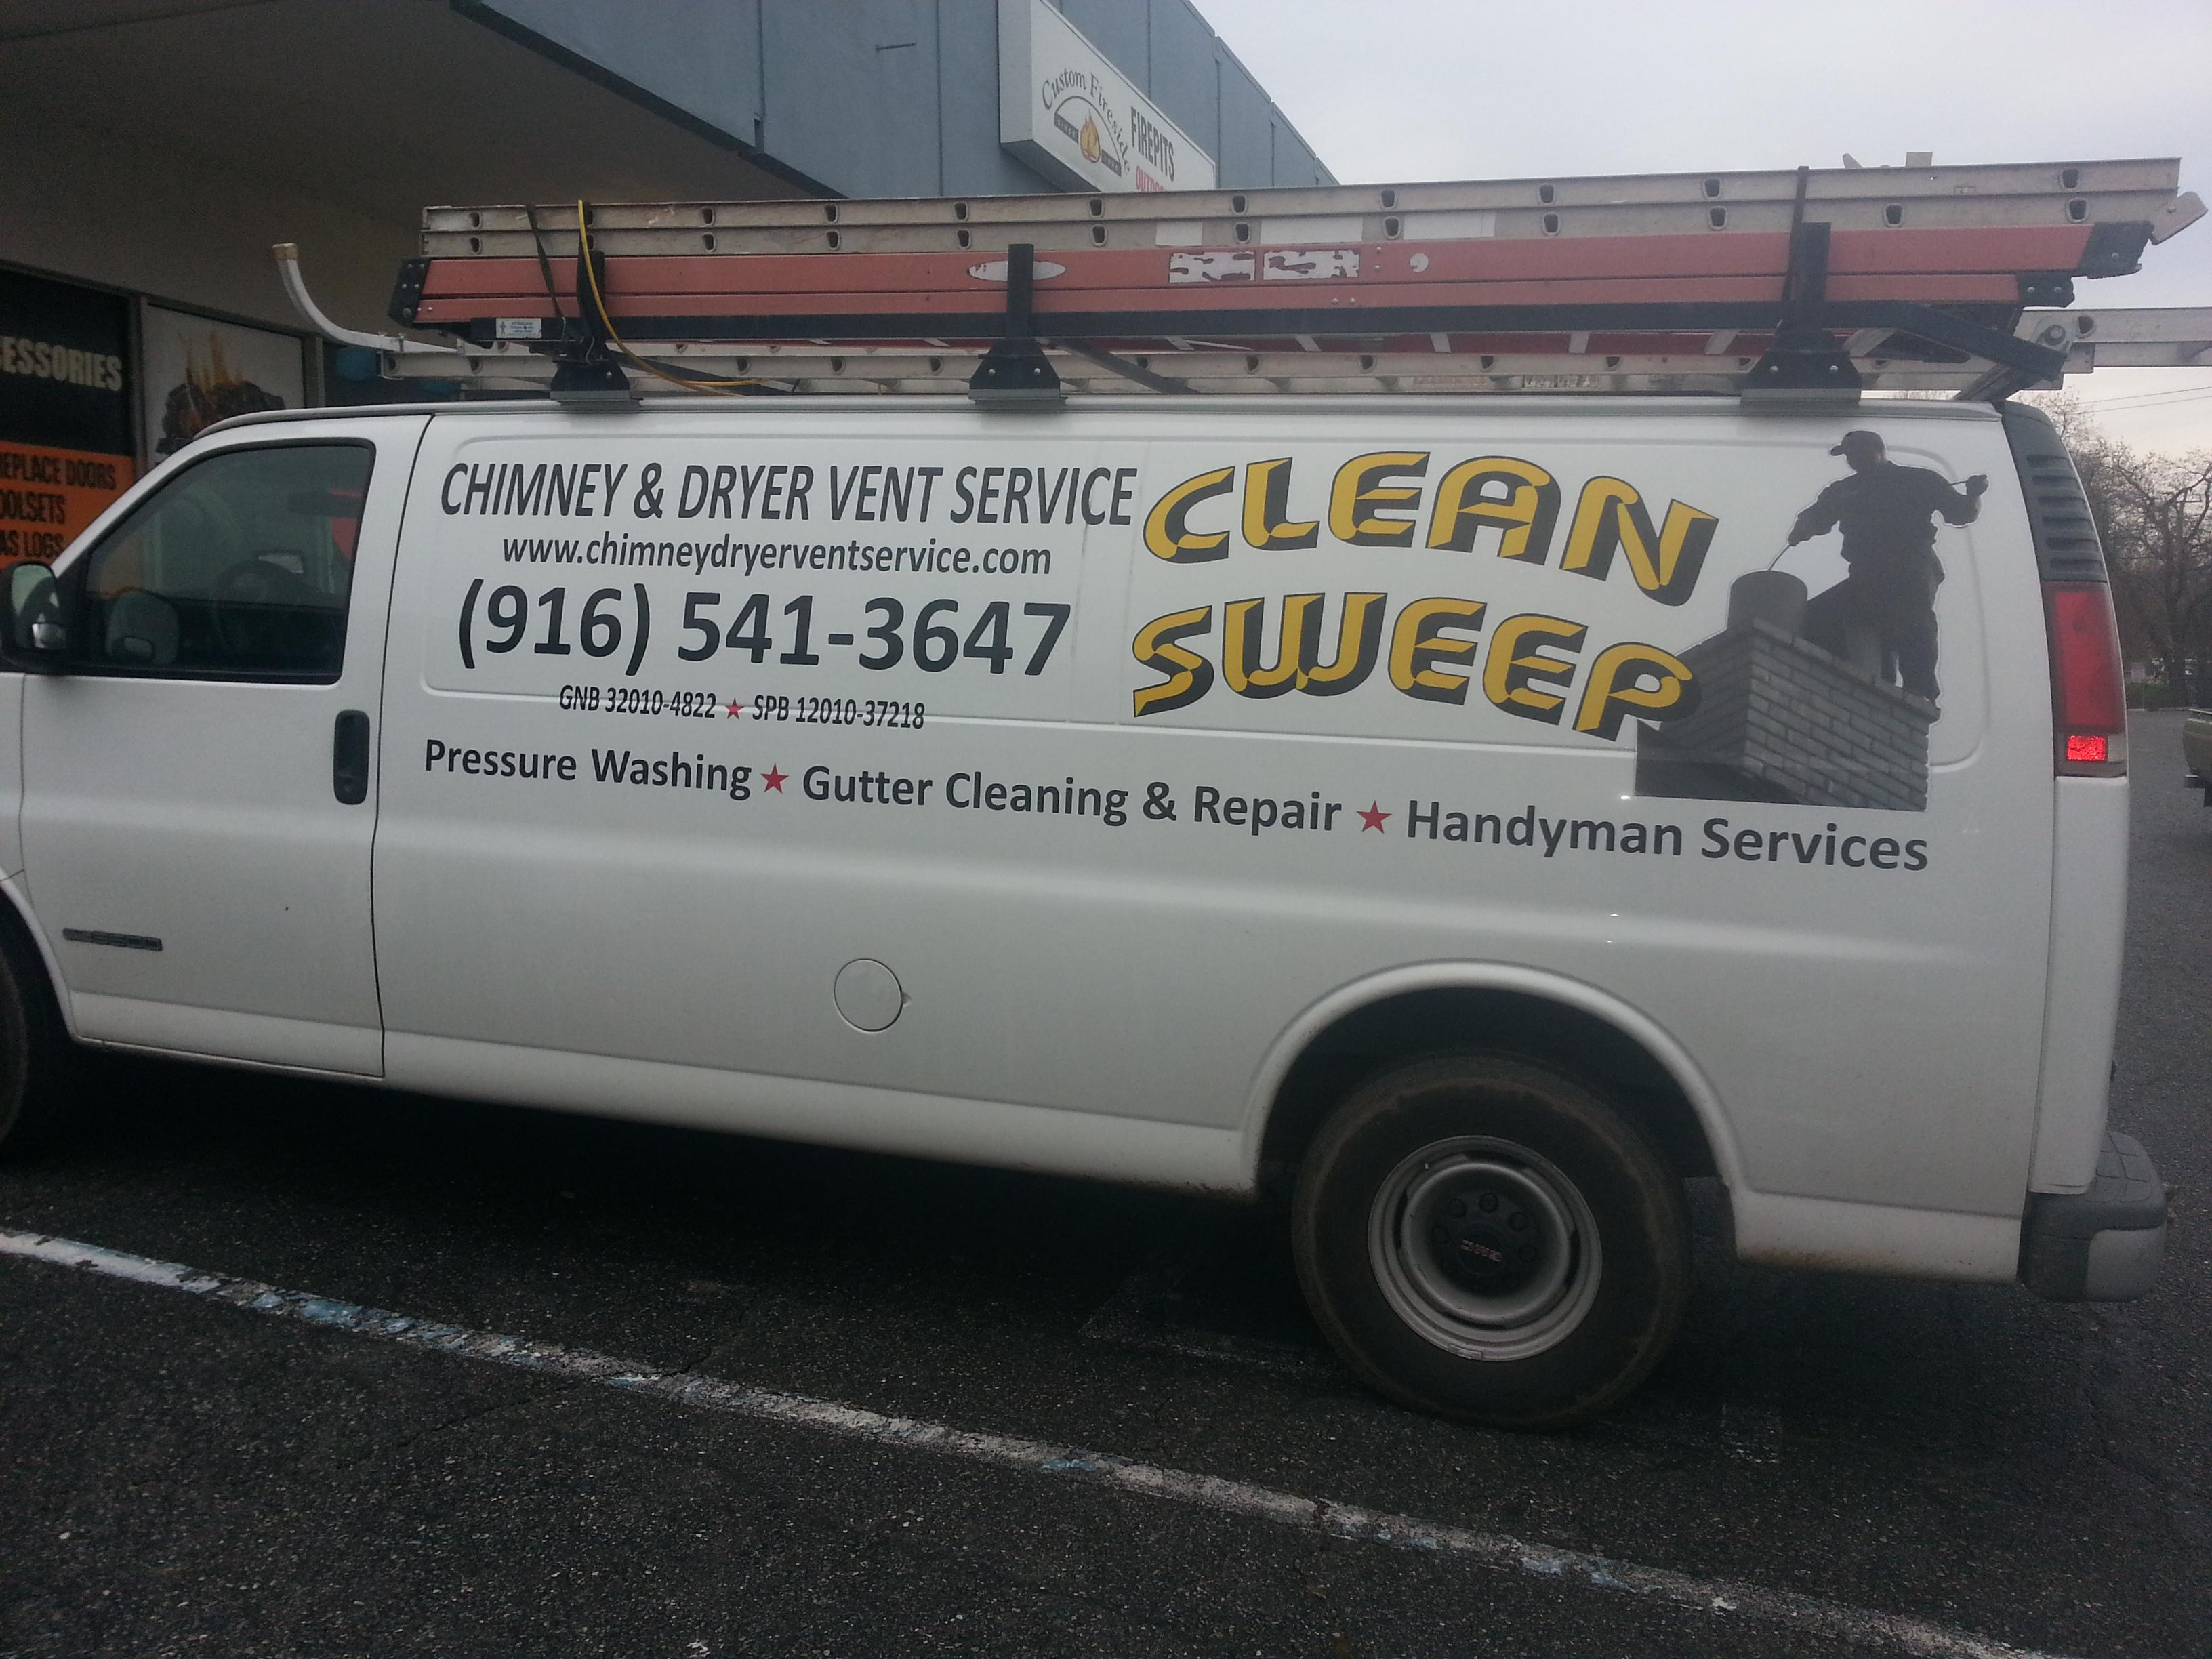 Clean Sweep Chimney Amp Dryer Vent Service Coupons Near Me